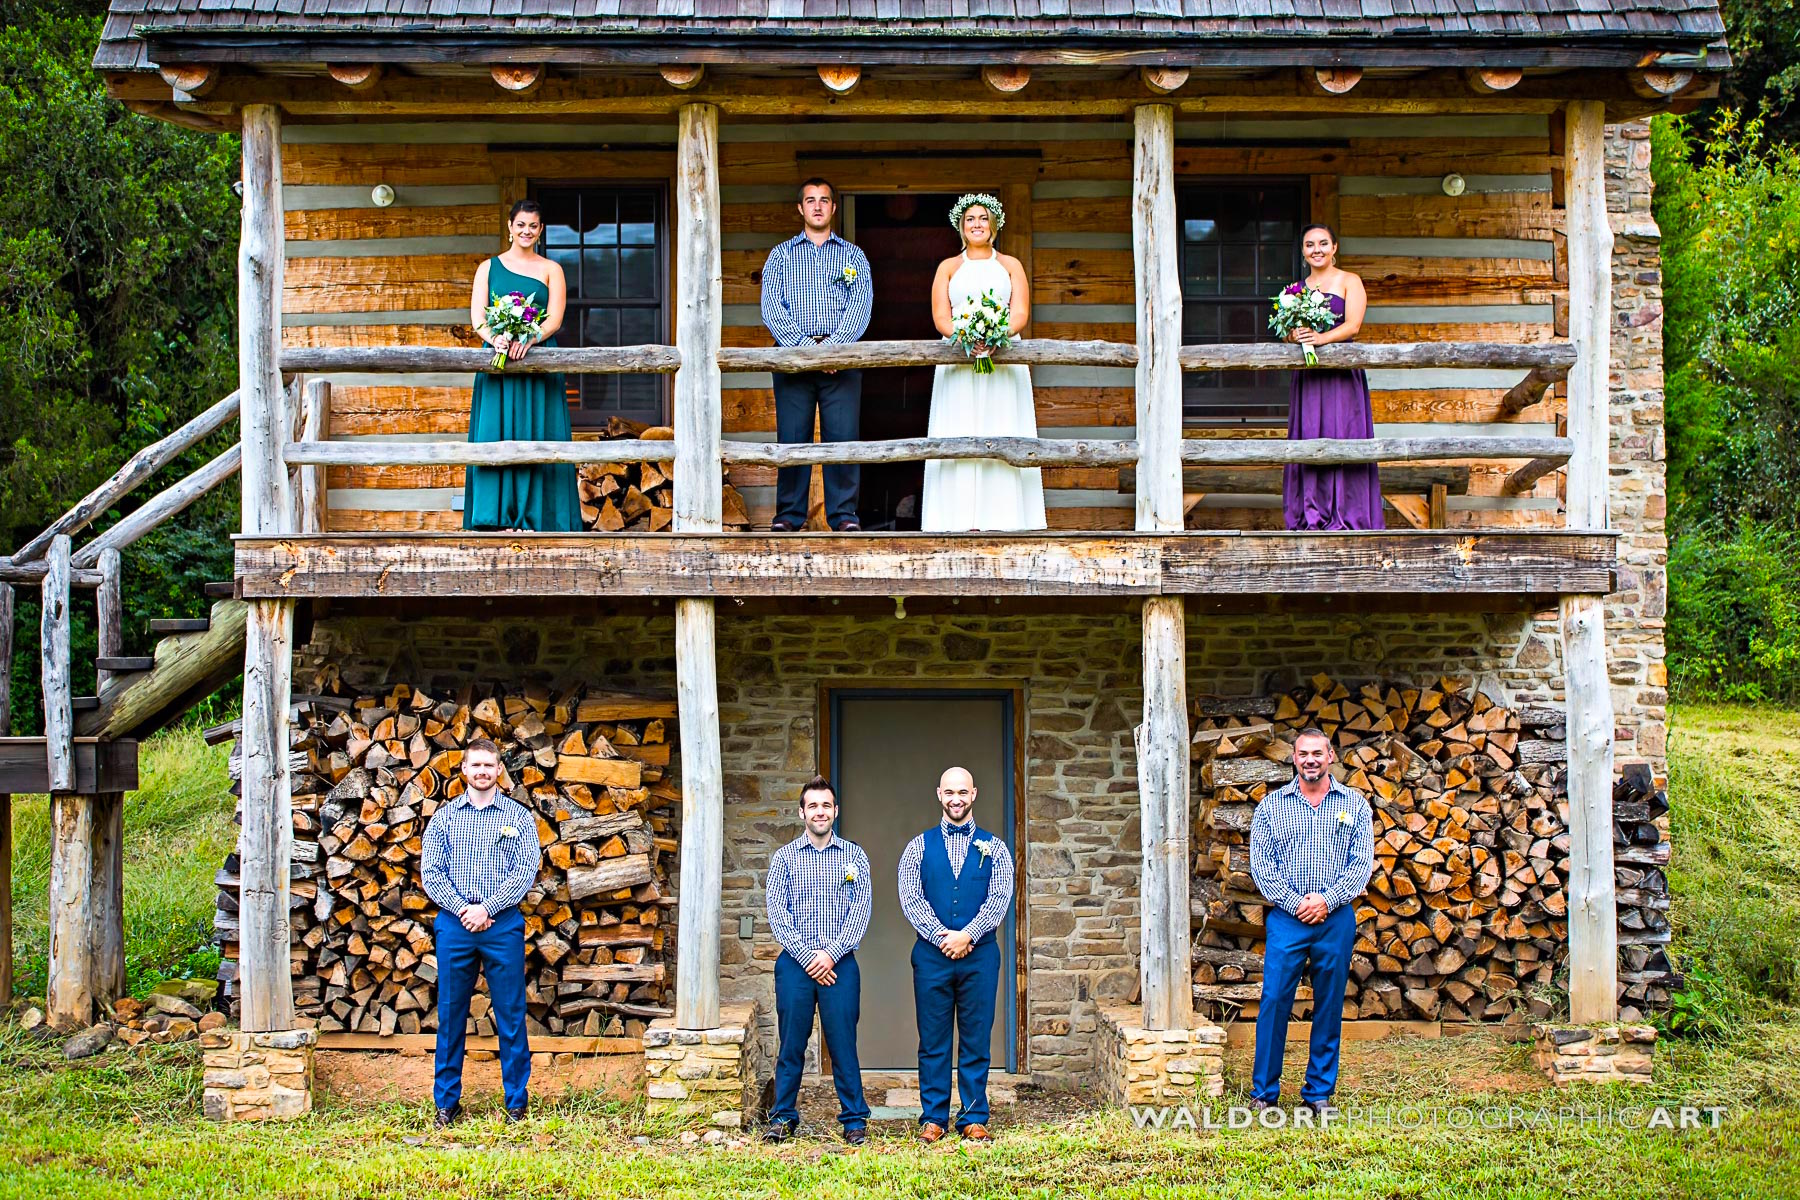 Bridal Cabin With Bridesmaids And Groomsmen Posing For Photo At Their Barn Wedding Near Knoxville